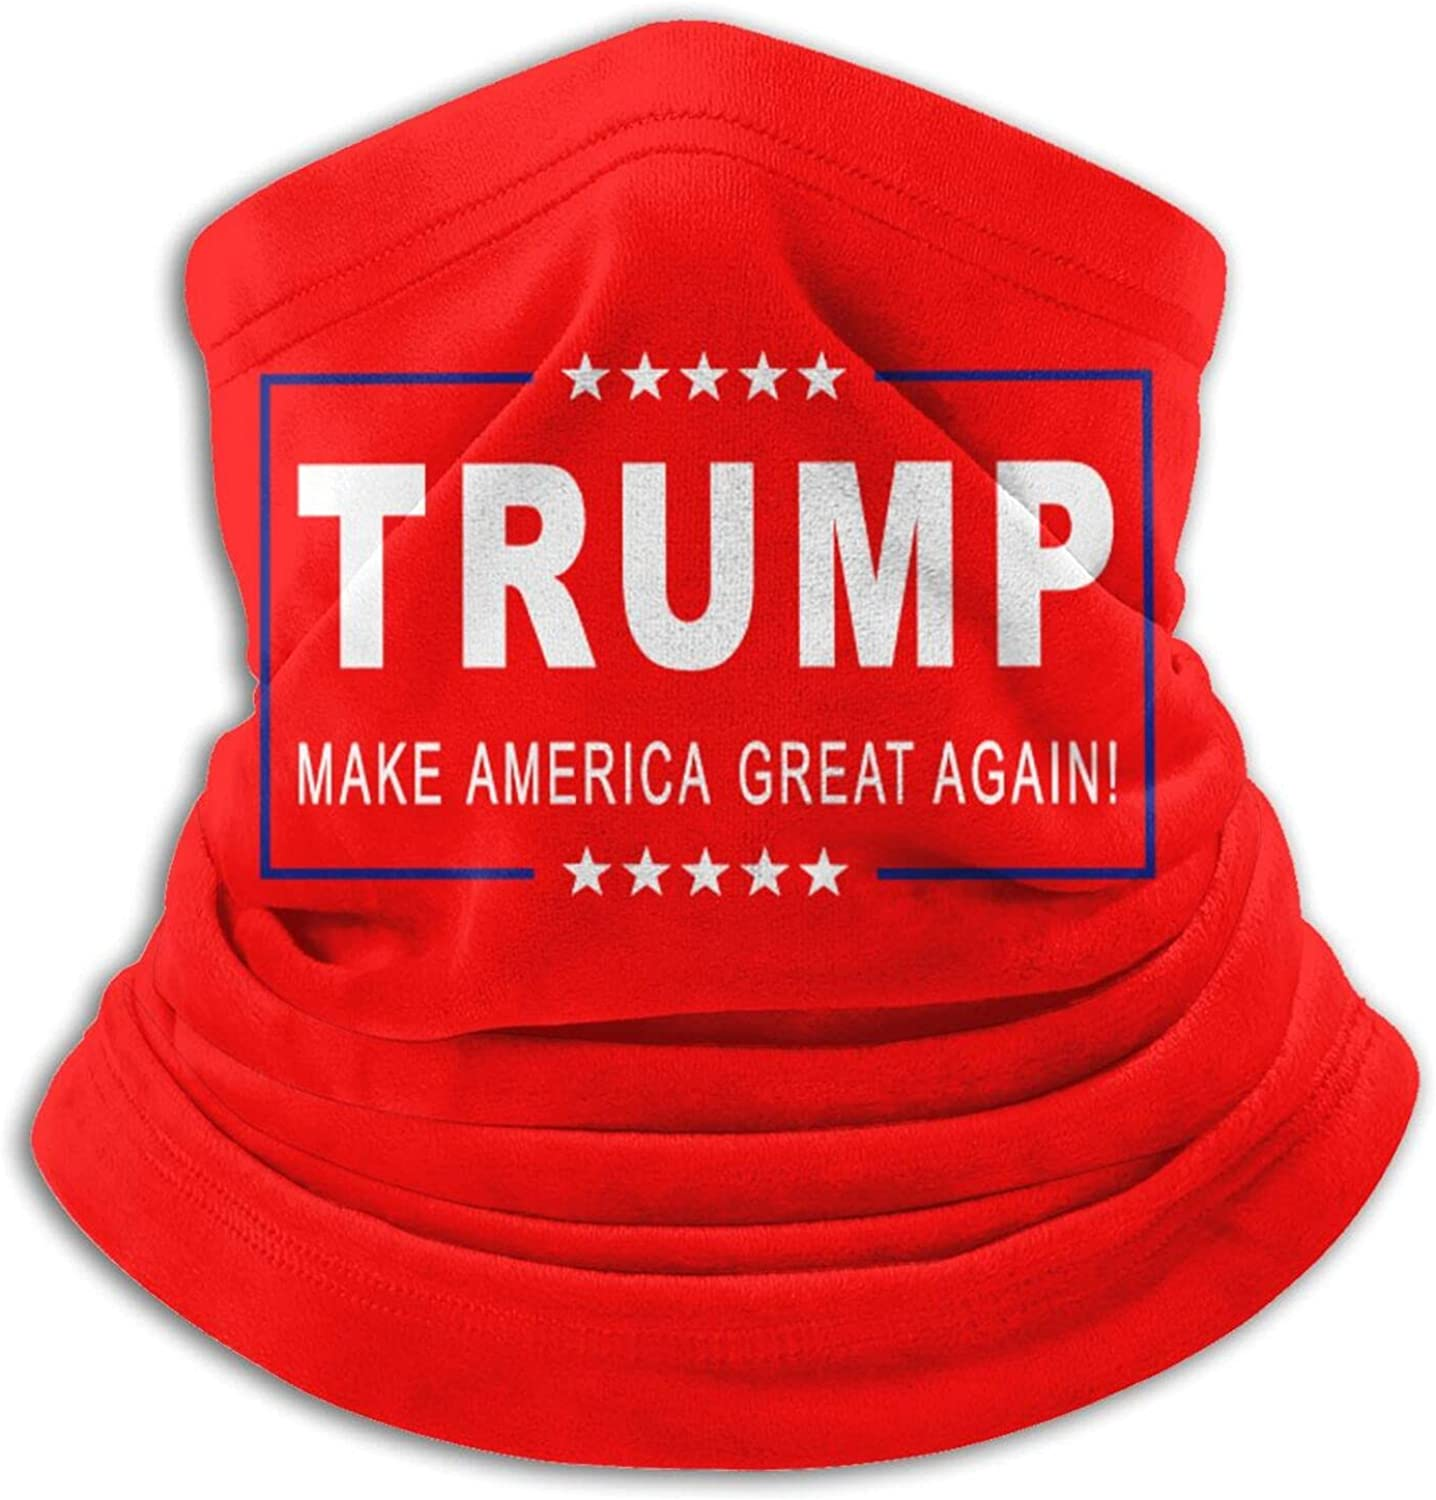 Trump make americagreat again 2020 unisex winter neck gaiter face cover mask, windproof balaclava scarf for fishing, running & hiking